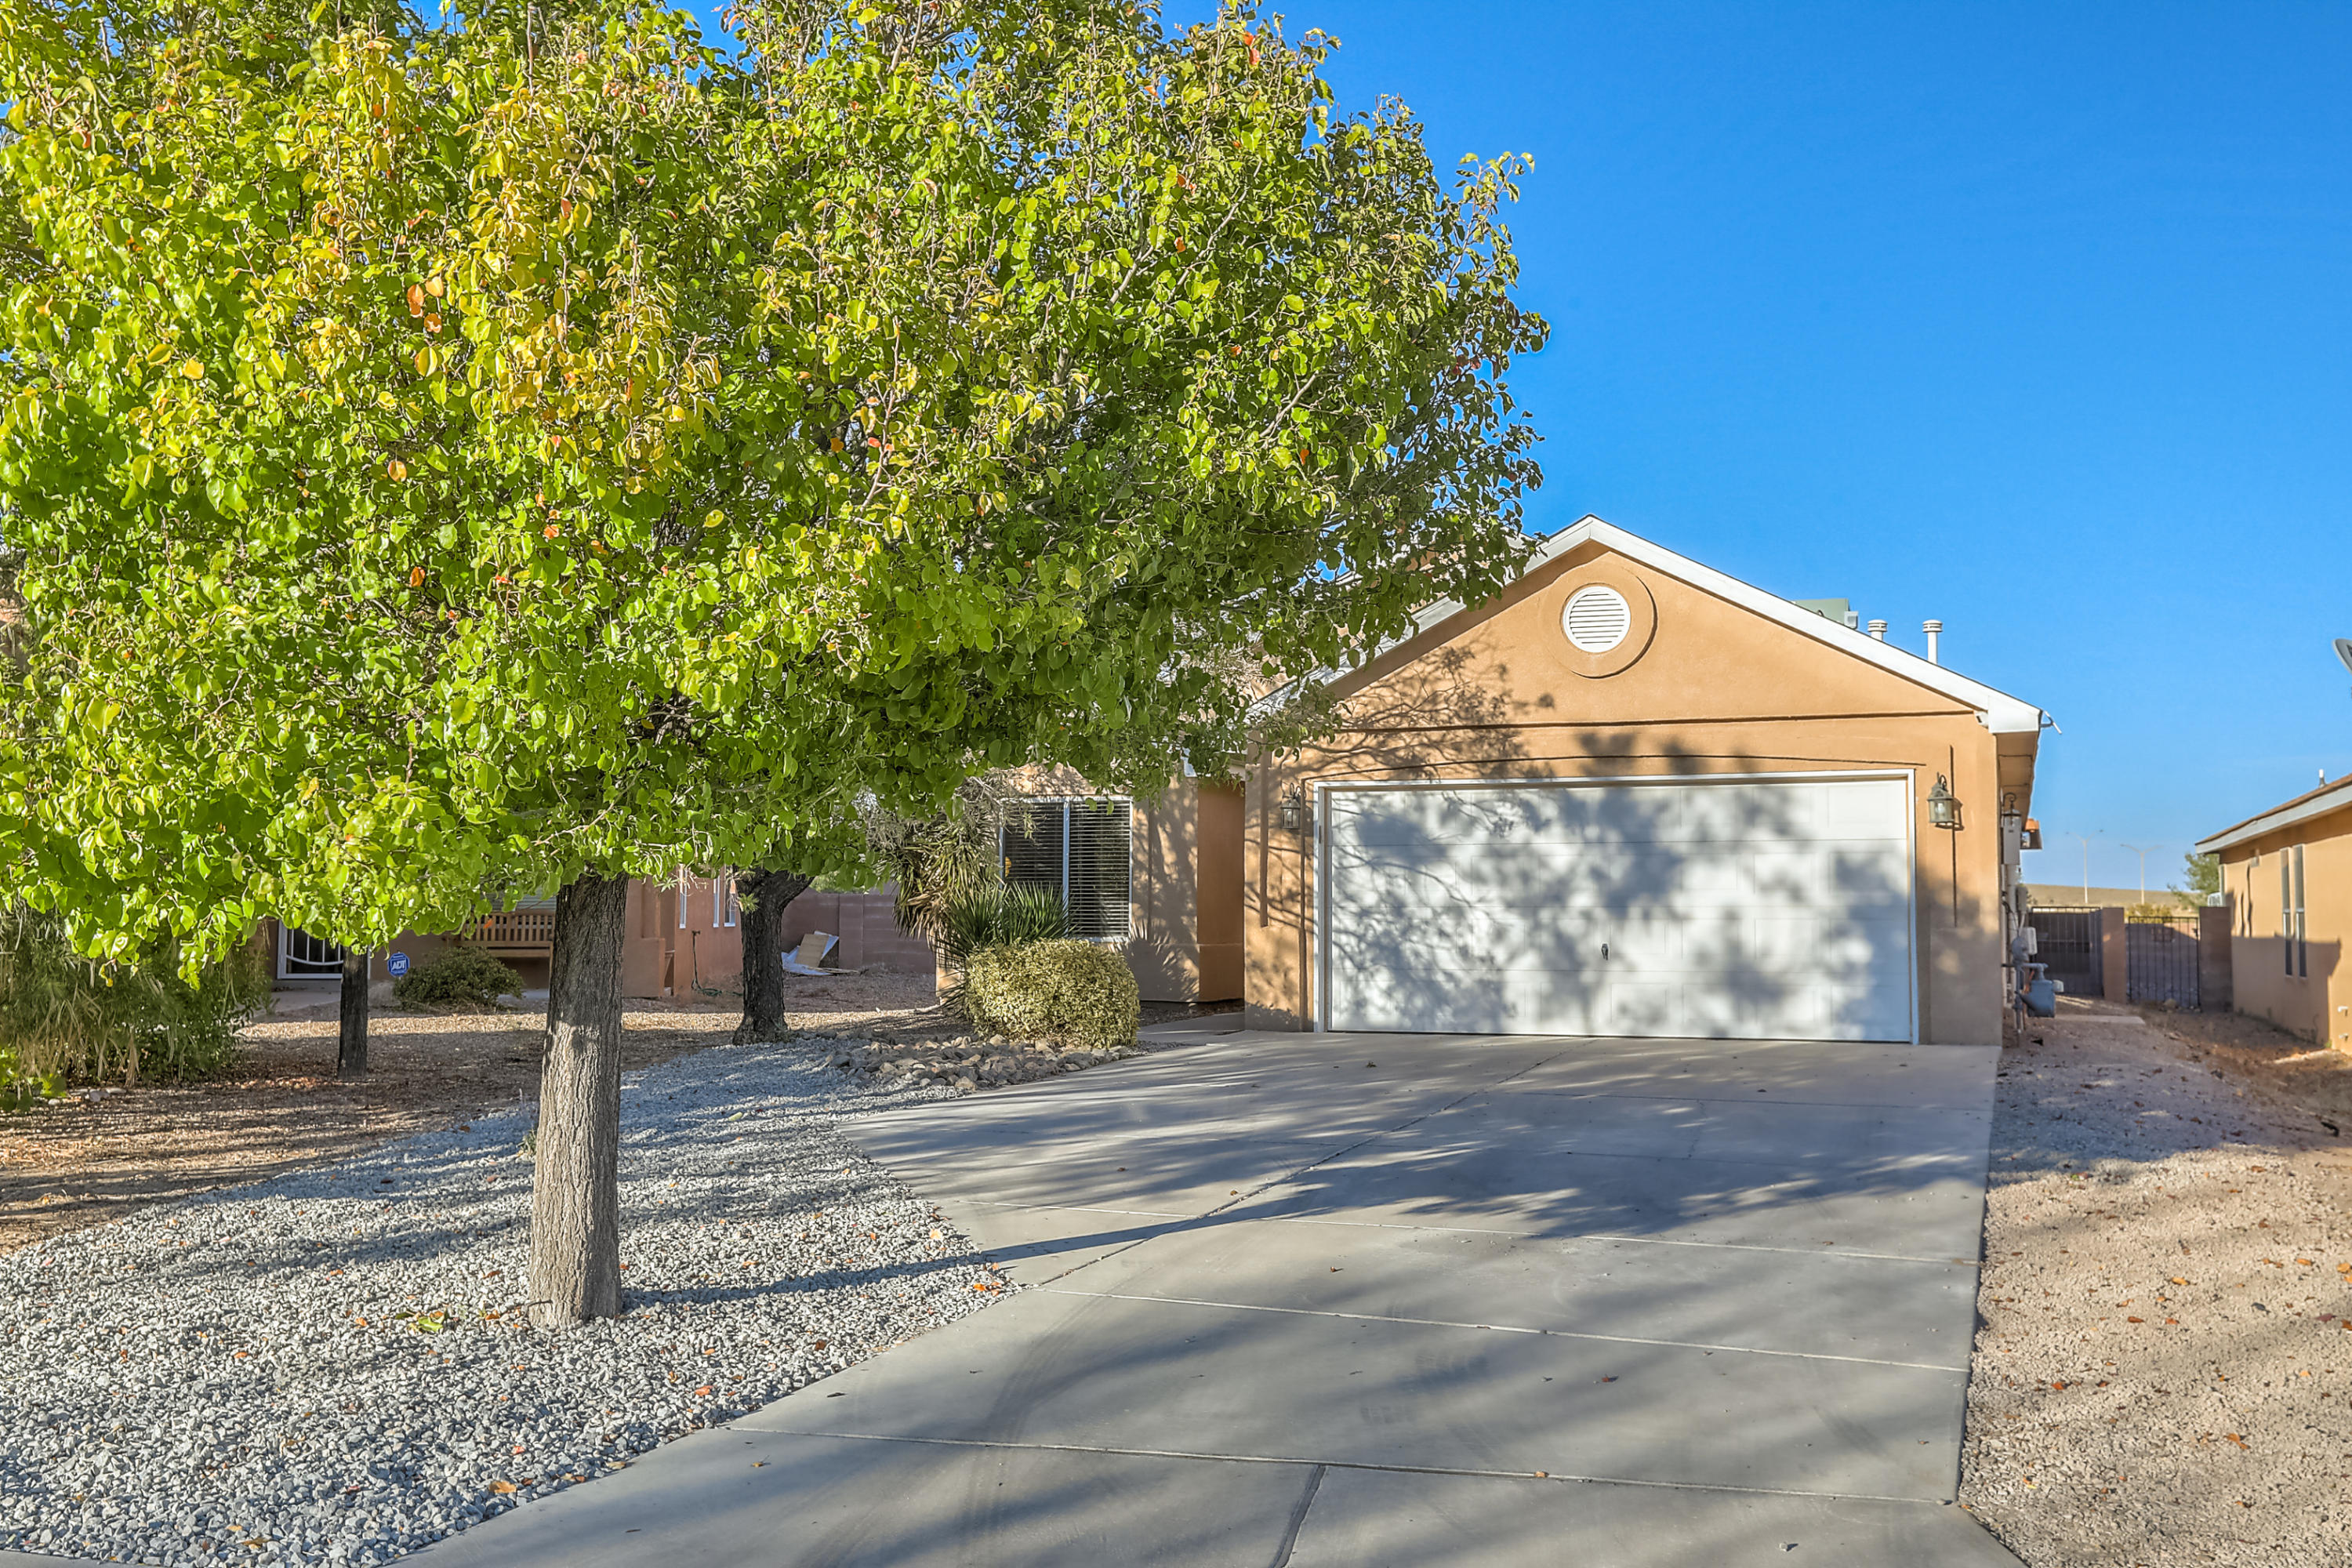 Welcome home to this beautiful one story in Sierra Norte. Walk into this spacious open floor plan with raised ceilings throughout. The living room is open concept. The dining space is adjoined and an open kitchen bar extends into the dining area perfect for entertaining. The spacious kitchen boasts plenty of natural lighting with double door for indoor/ outdoor access and dining. The kitchen boasts updated counter tops, updated cabinets and stainless steel appliances. The master suite is cozy with vaulted ceilings, plenty of natural lighting and an enormous walk in closet. The two additional bedrooms...